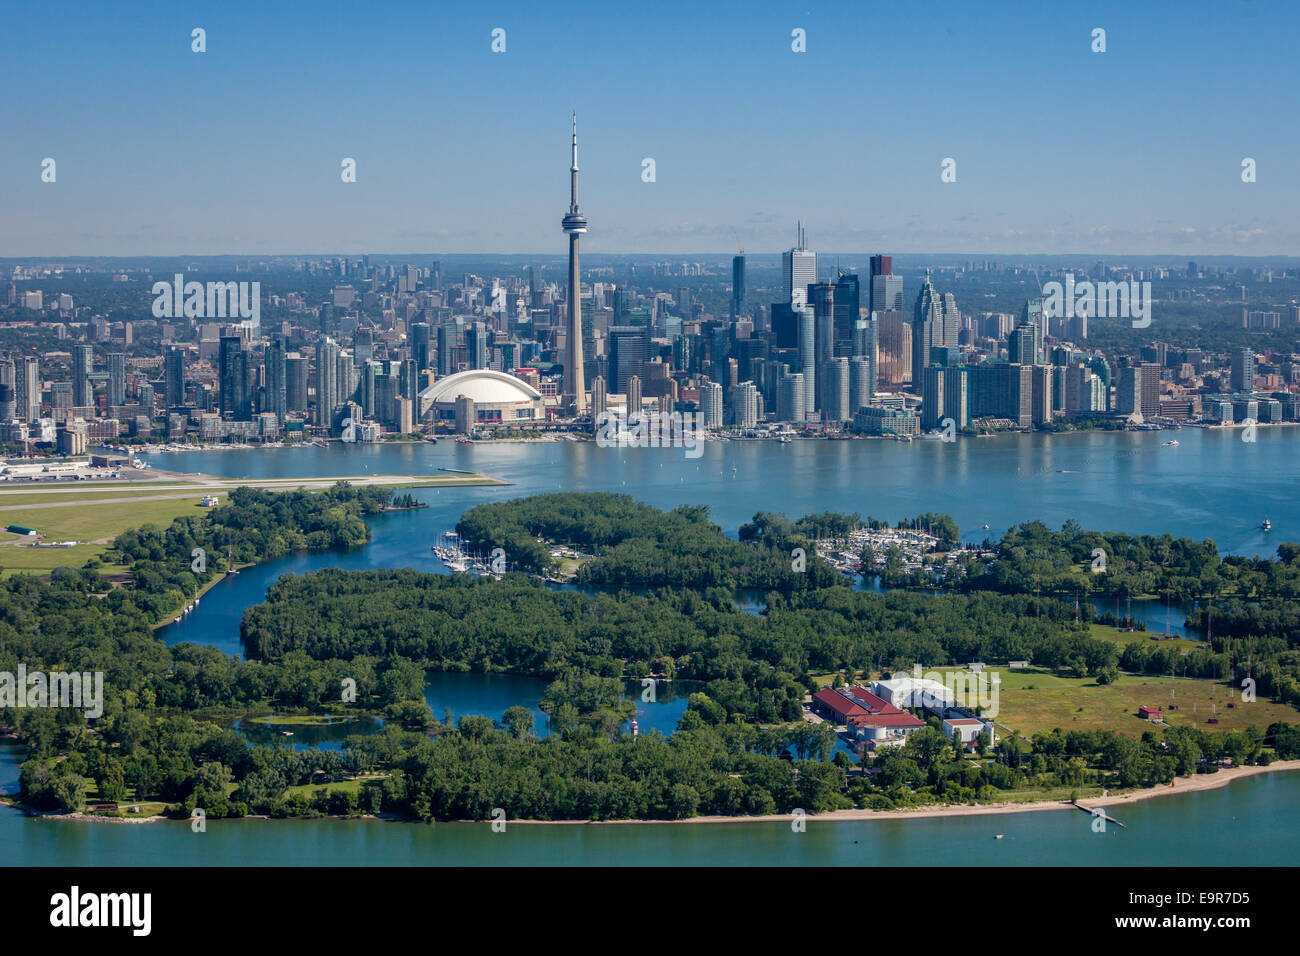 Aerial View Of Toronto Skyline With Islands In The